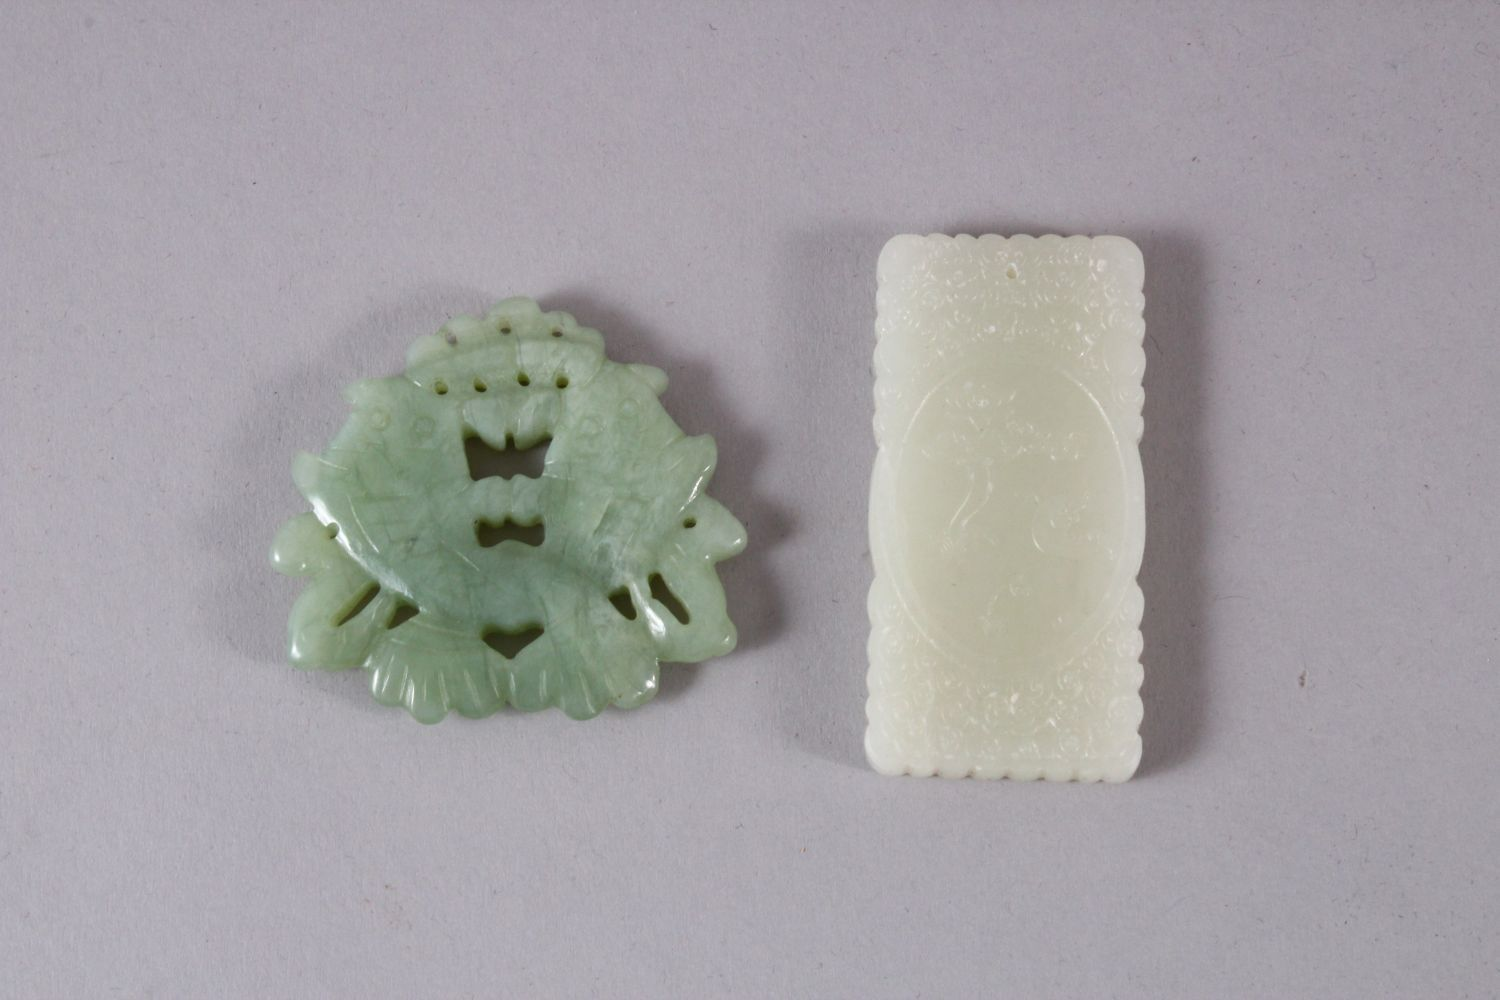 TWO CHINESE CARVED JADE TWIN FISH & IMMORTAL PENDANTS, one carved in the form of twin fish, 5cm, - Image 4 of 5